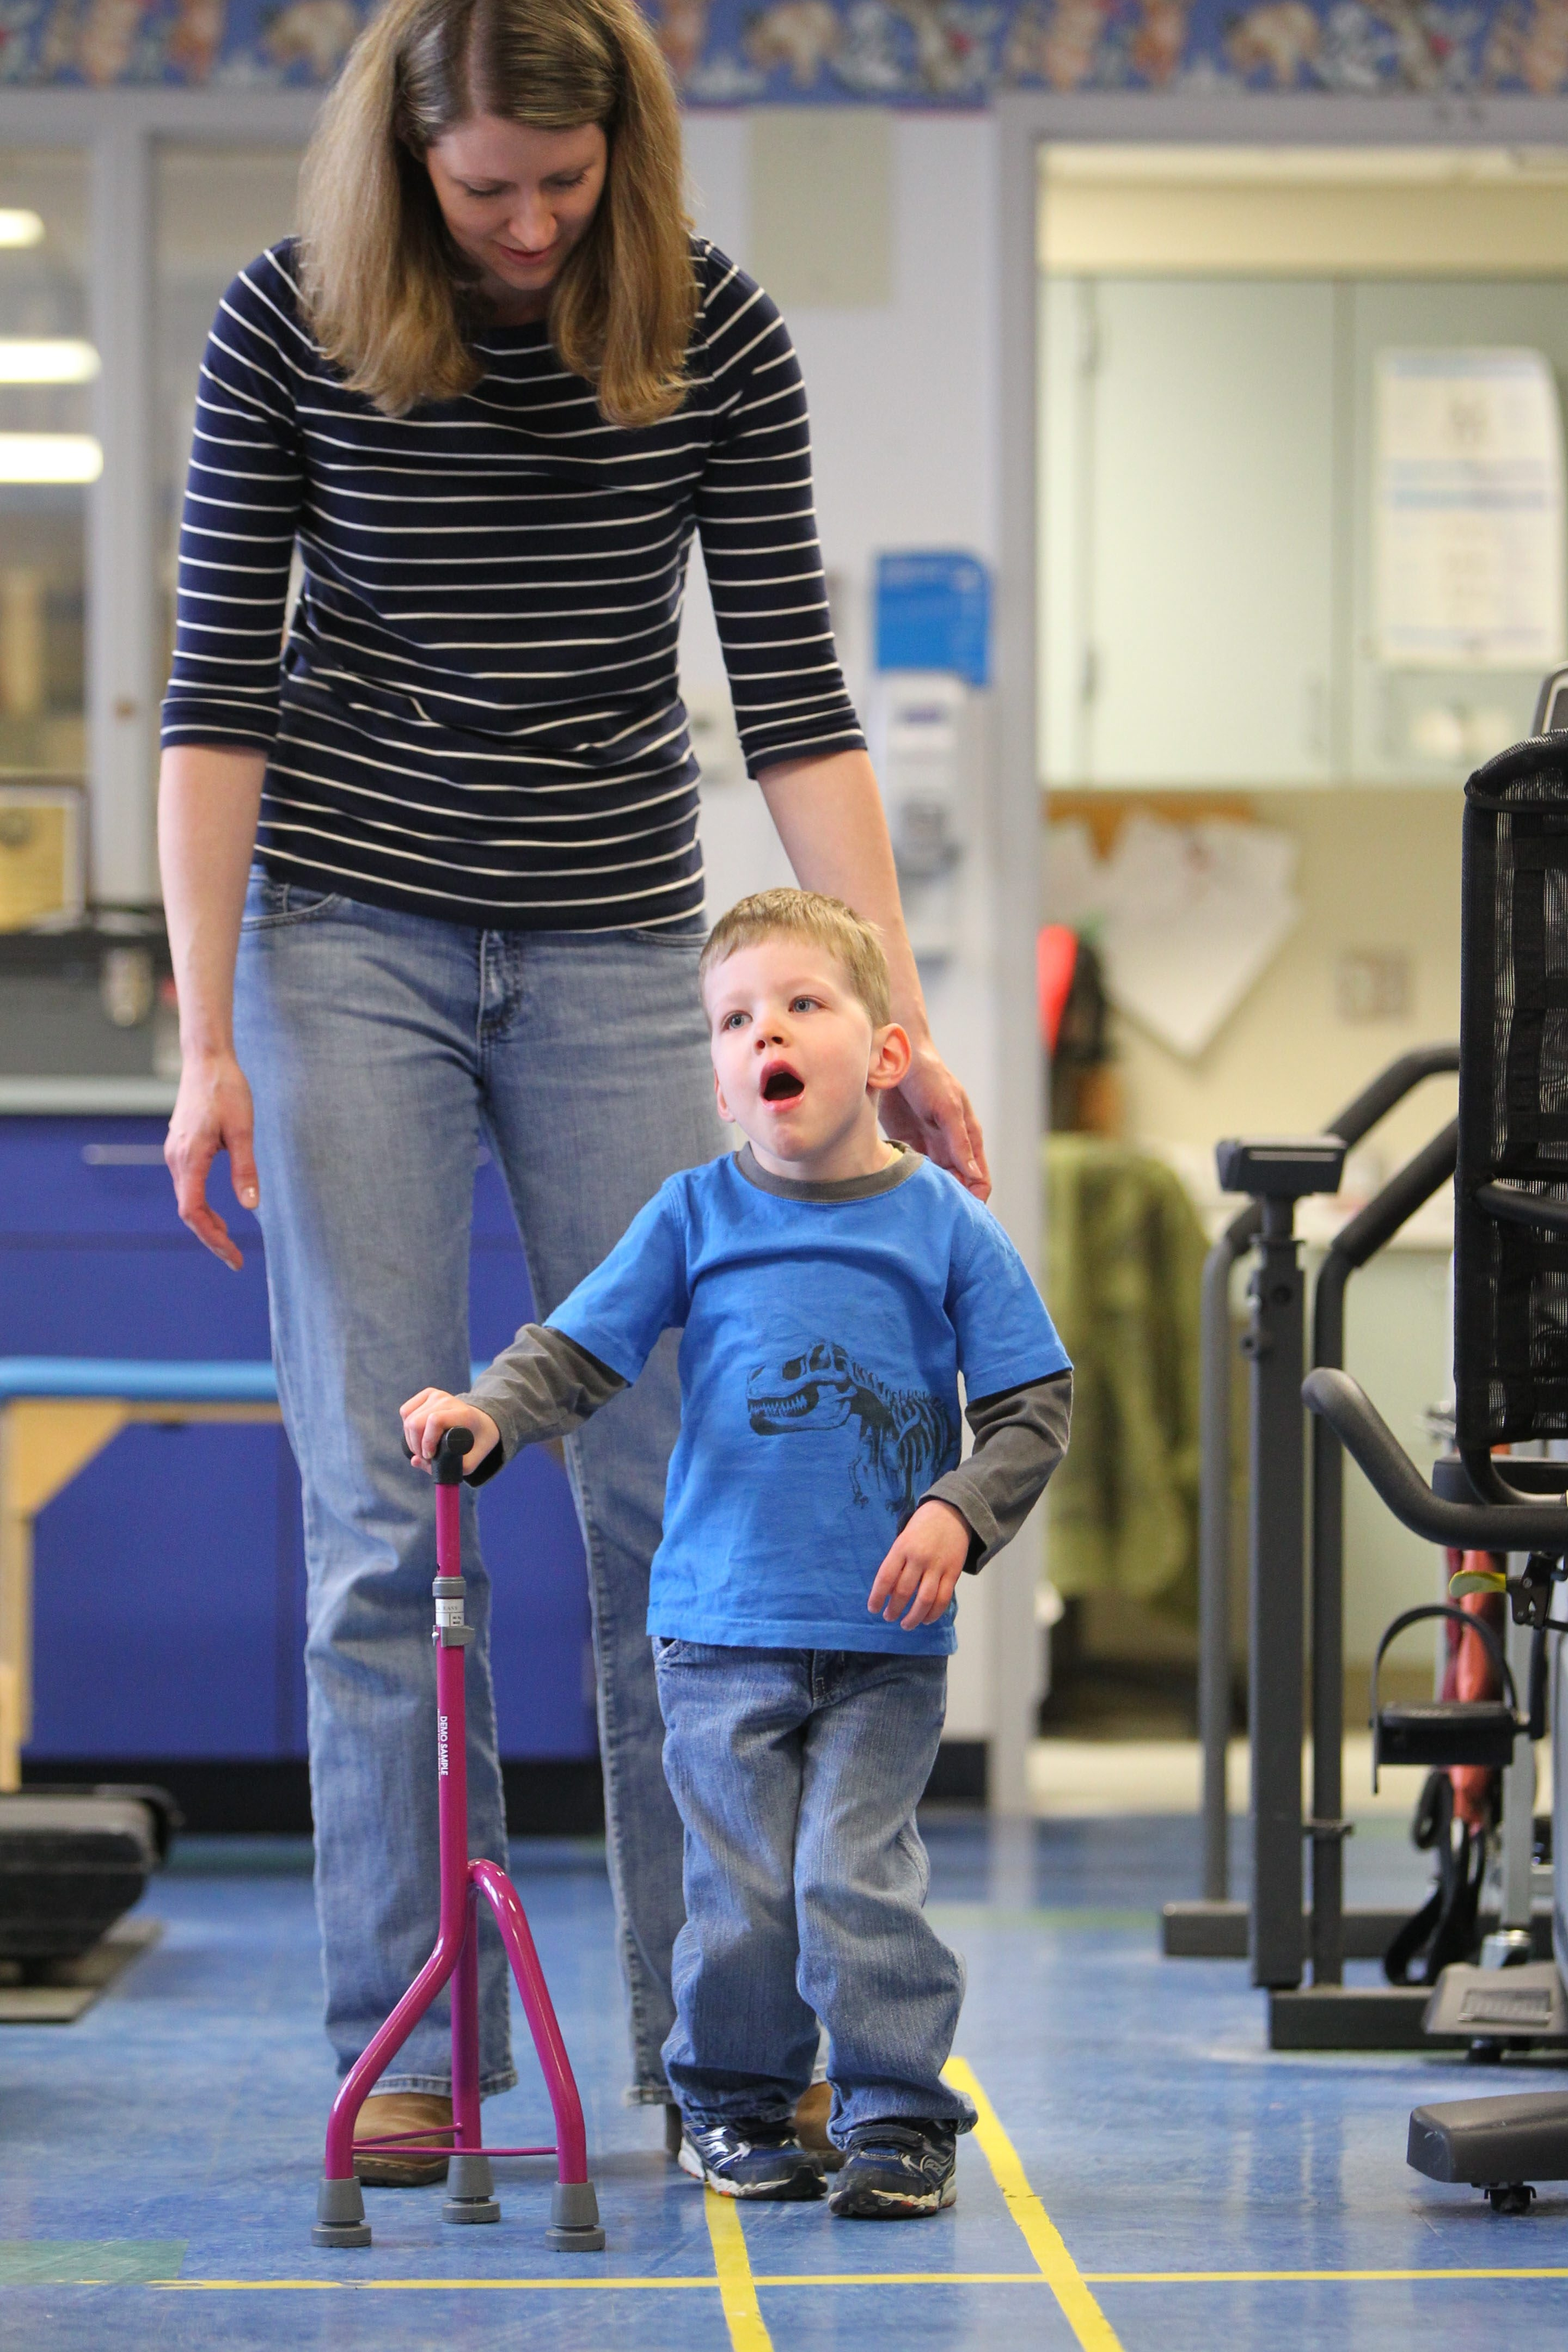 Austin Collier, 3 years old, works on walking with his mother Stephanie Collier, back, and physical therapist Dawn Shaflucas, not shown, at the Robert Warner Rehab Center in Women and Children's hospital in Buffalo Tuesday, April 15, 2014.